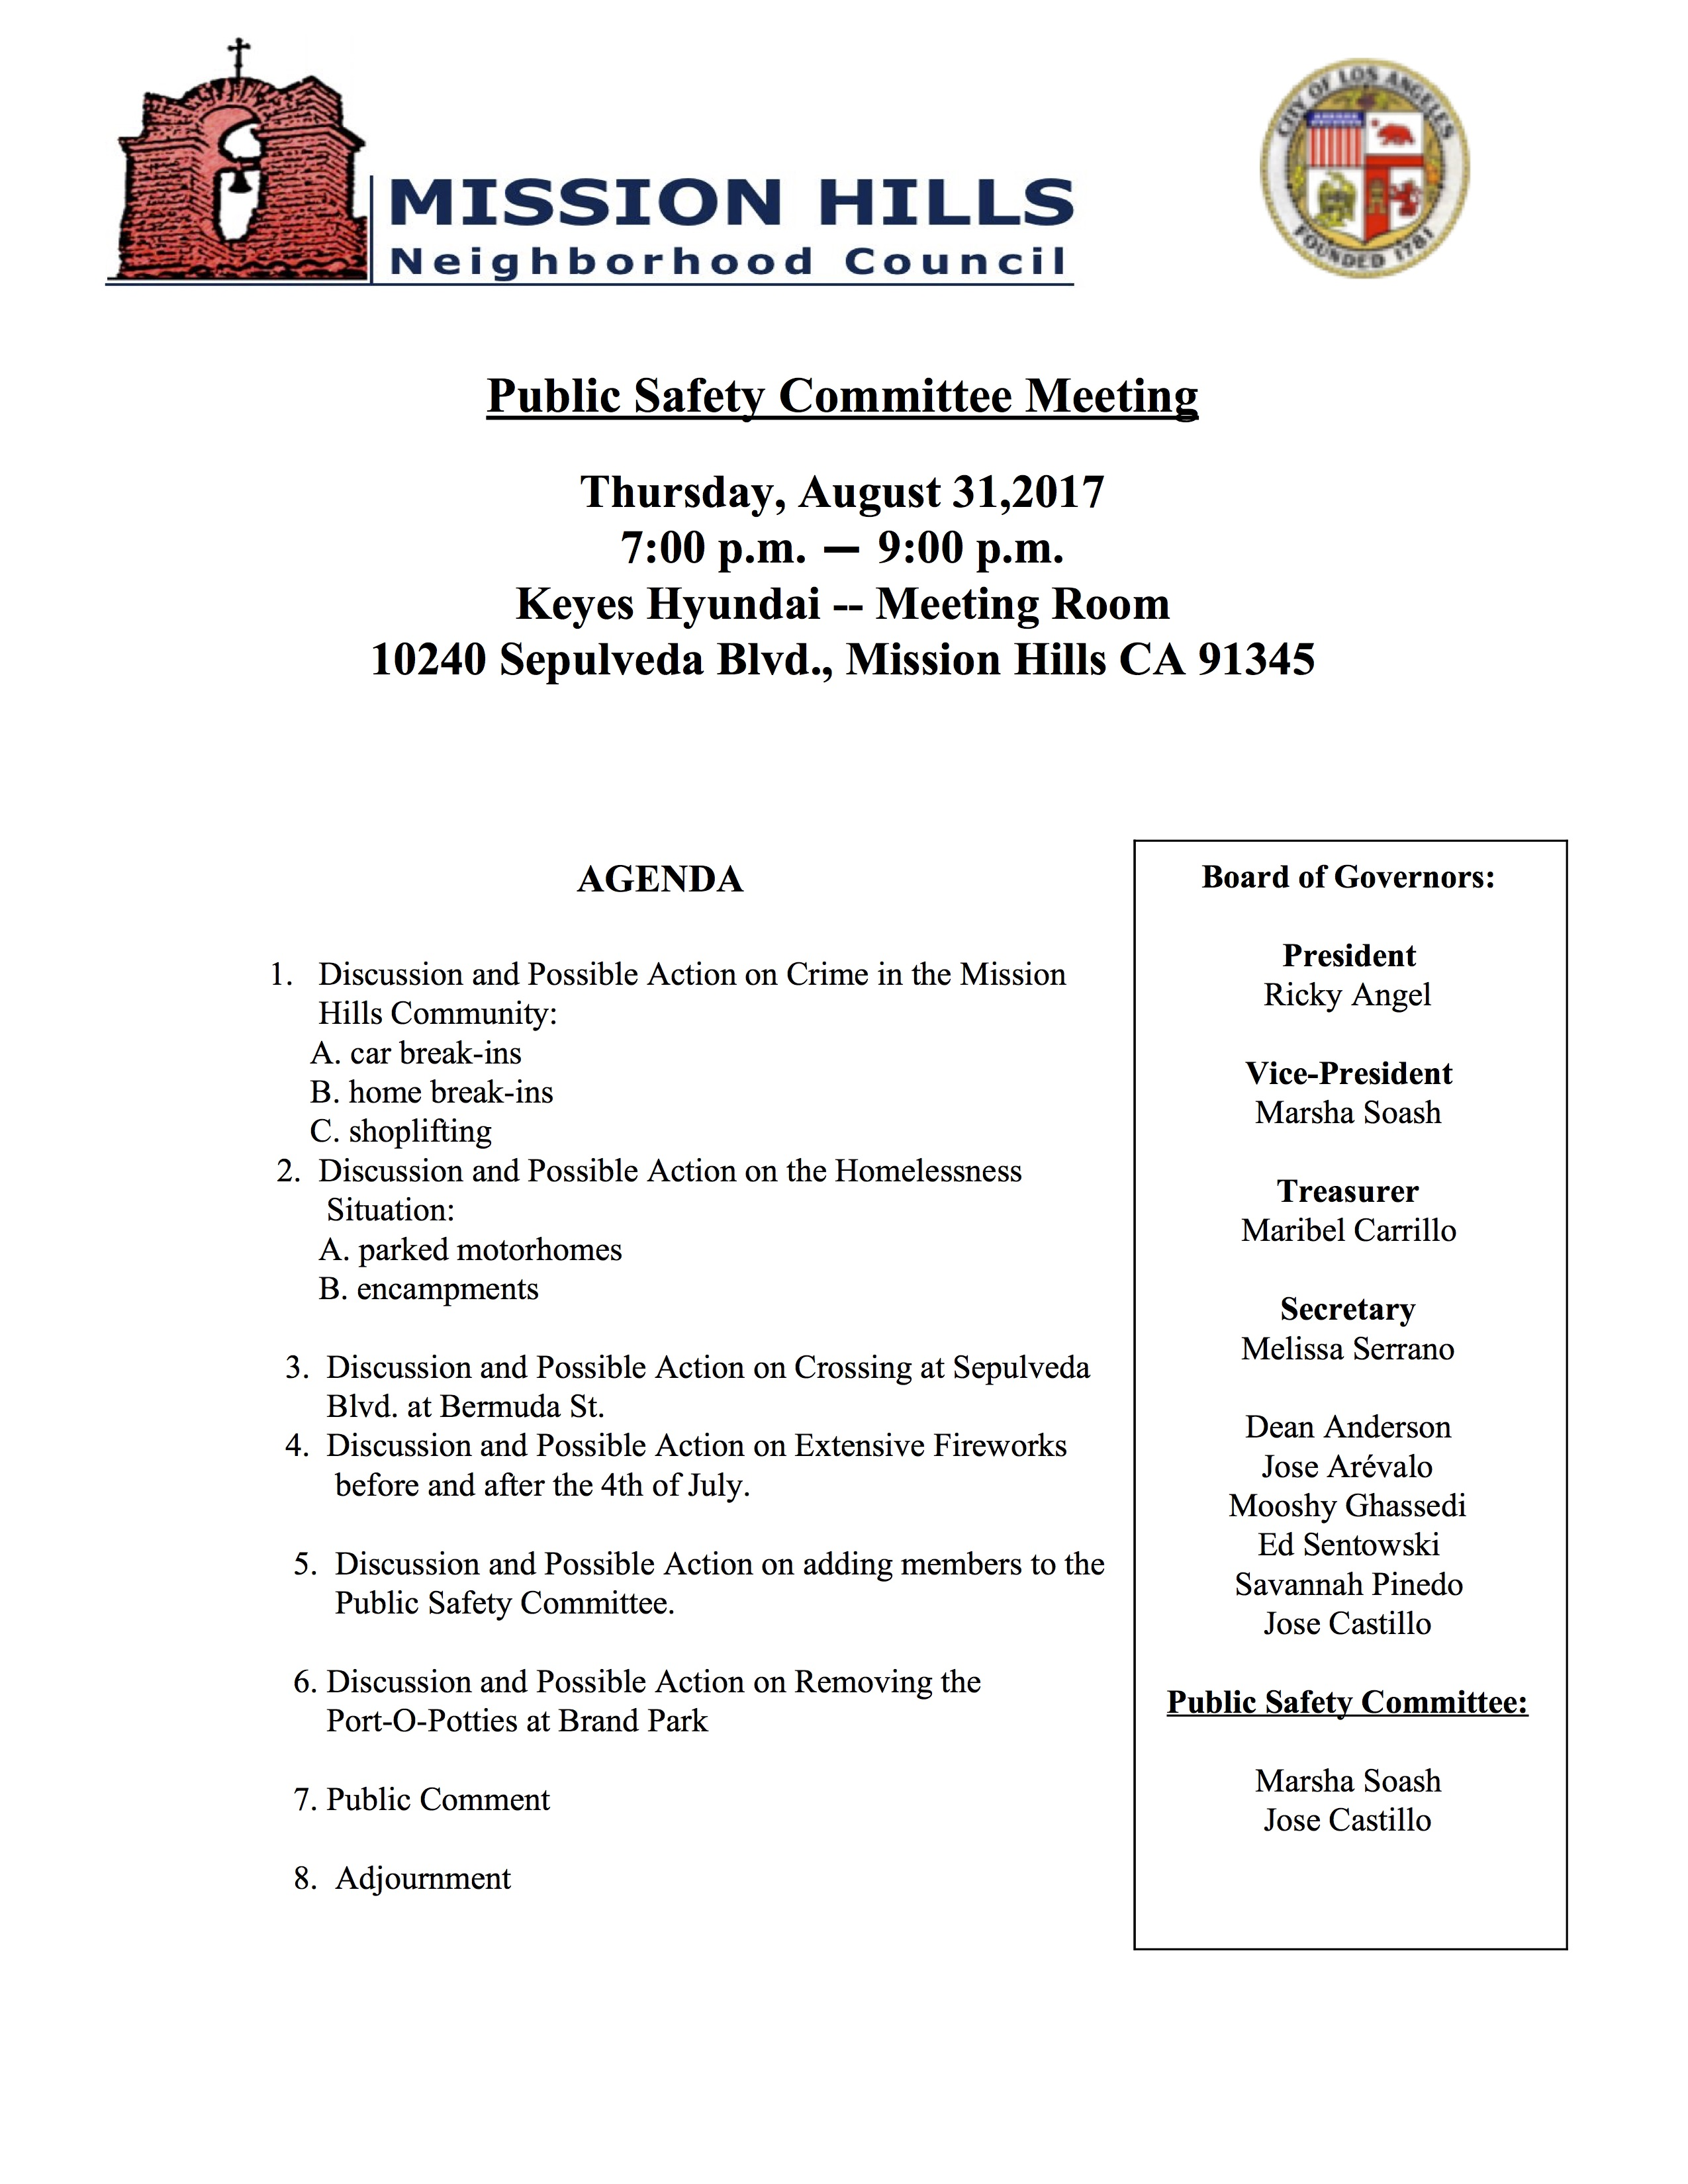 Public Safety Committee Agenda